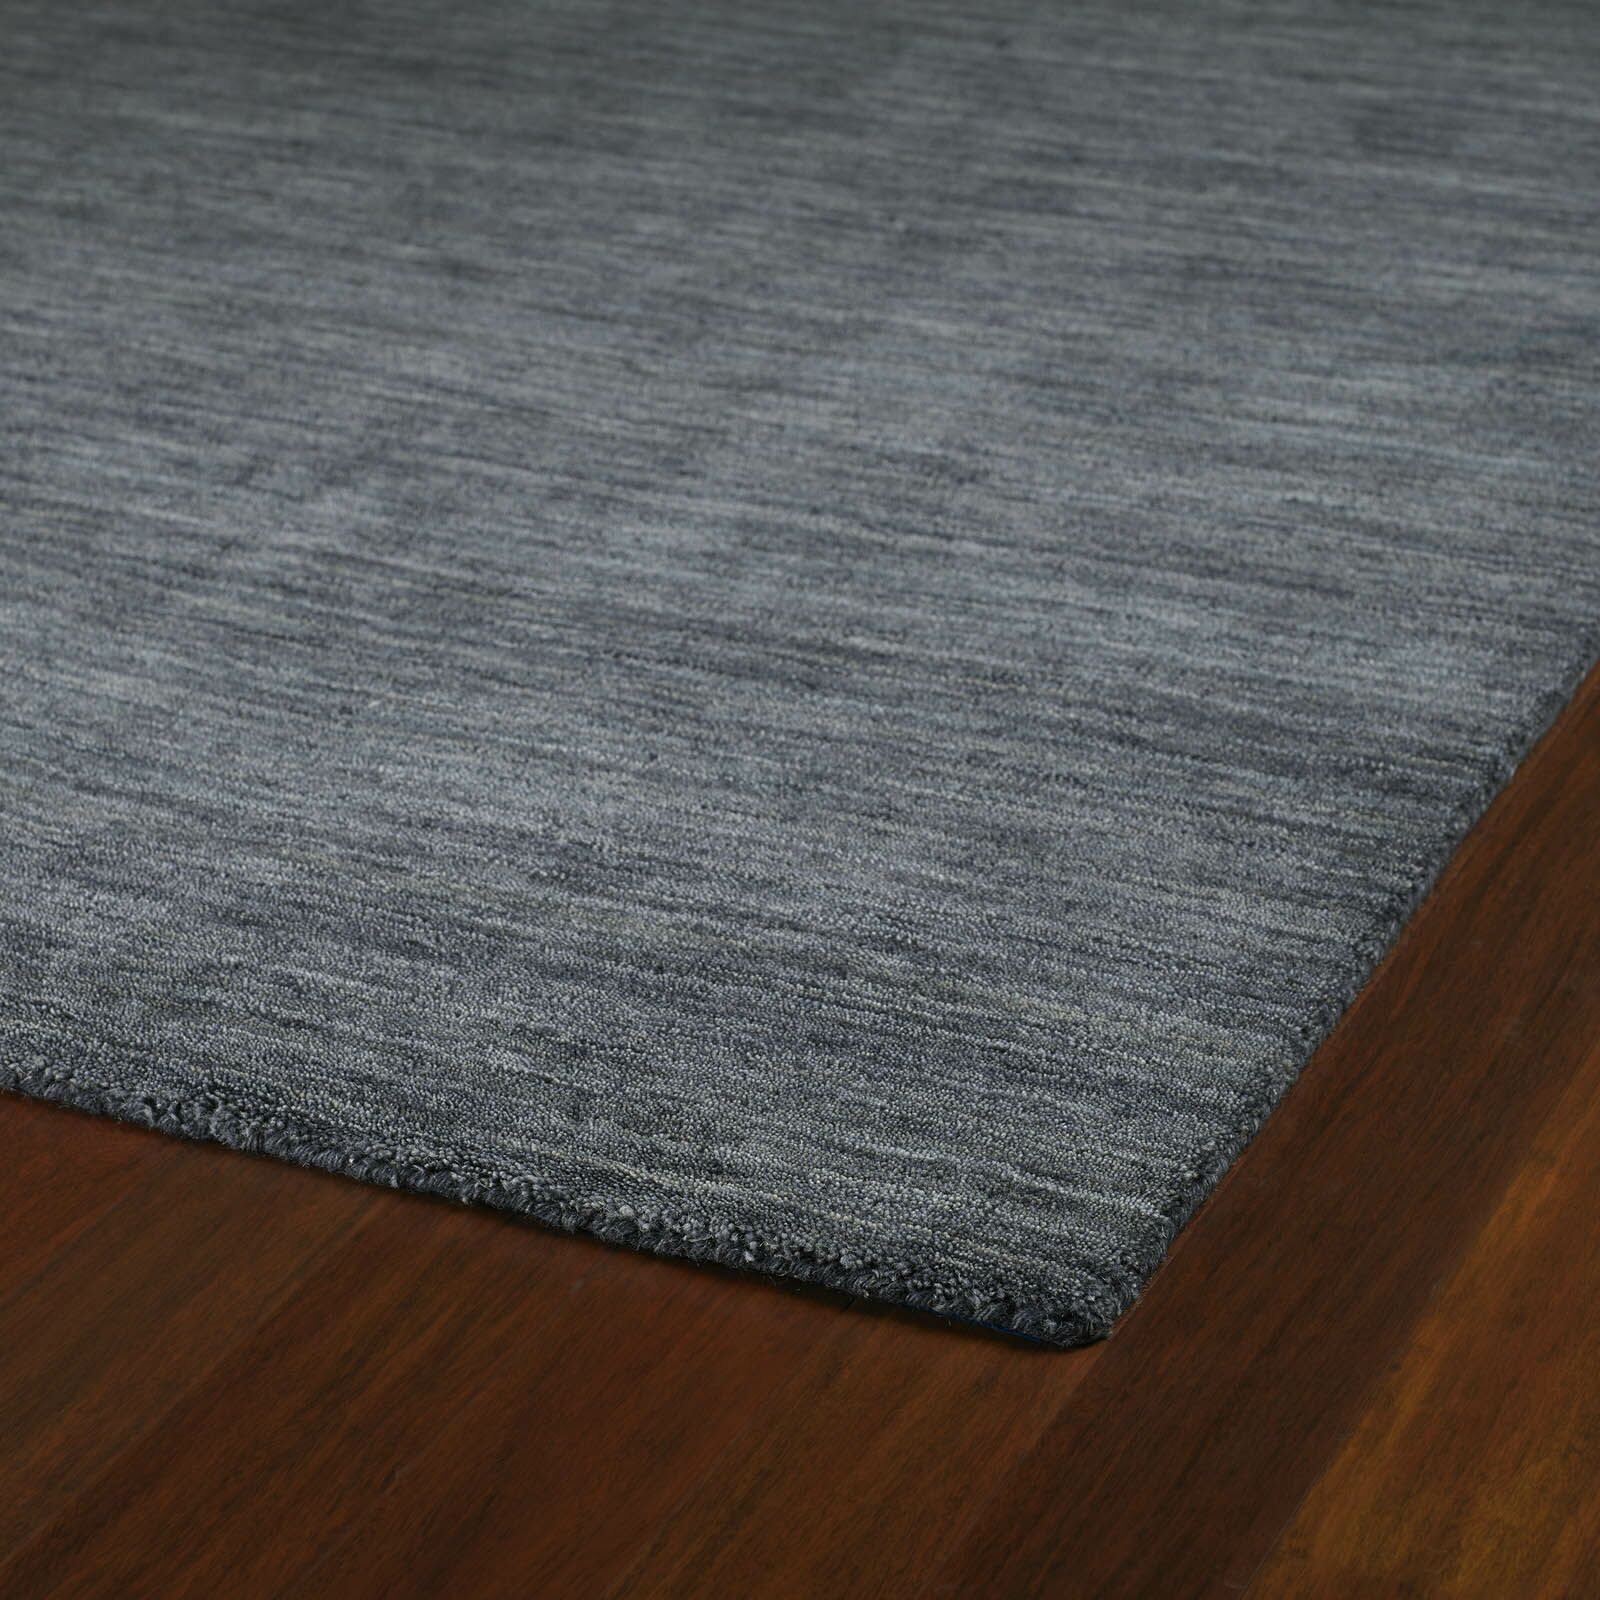 Mccabe Hand Woven Wool Gray Area Rug Rug Size: Rectangle 9'6